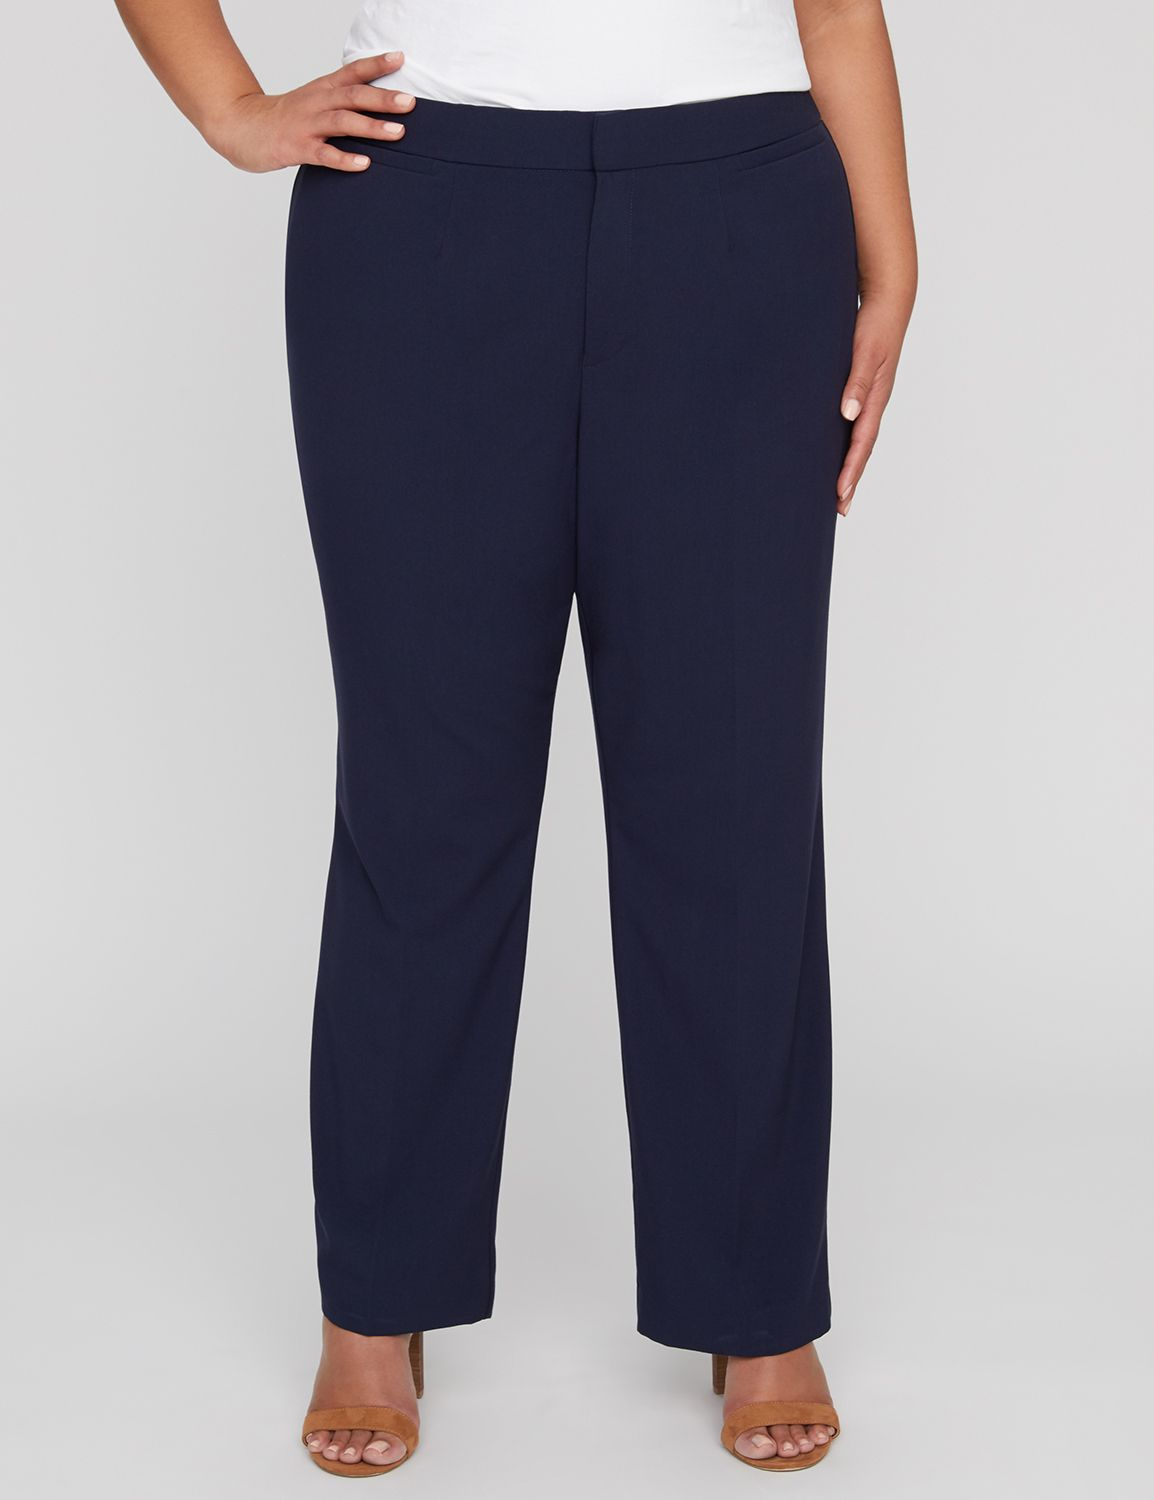 Right Fit Pant (Curvy) Right Fit Pant (Curvy) MP-300043656